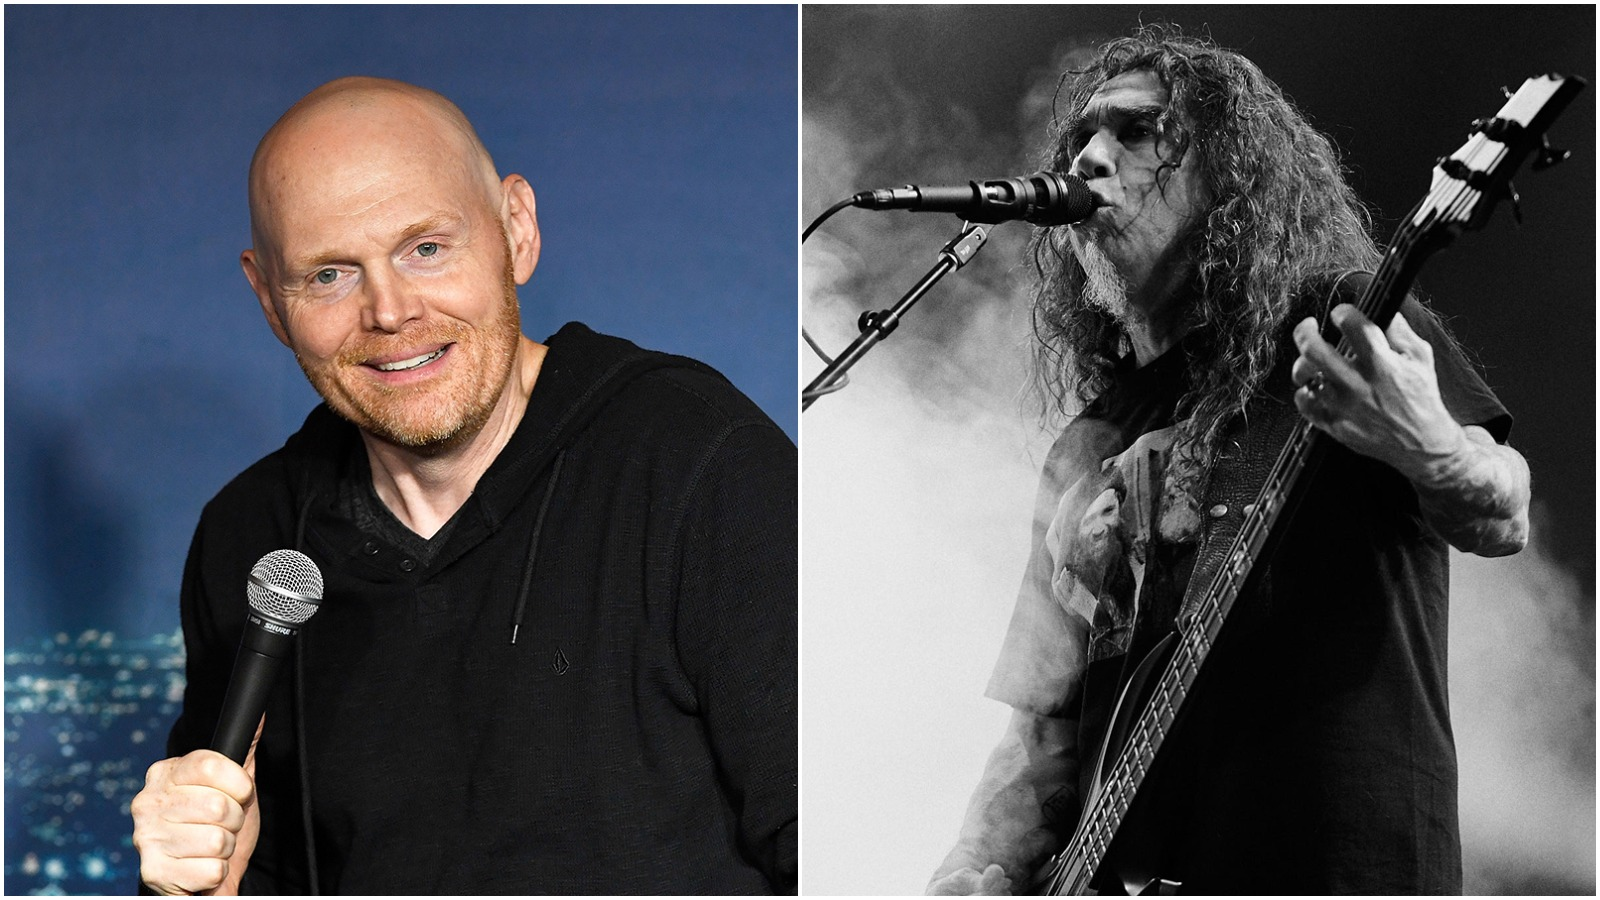 """Hear Comedian Bill Burr Rave Over Final Slayer Show: """"I Actually Got Chills"""""""